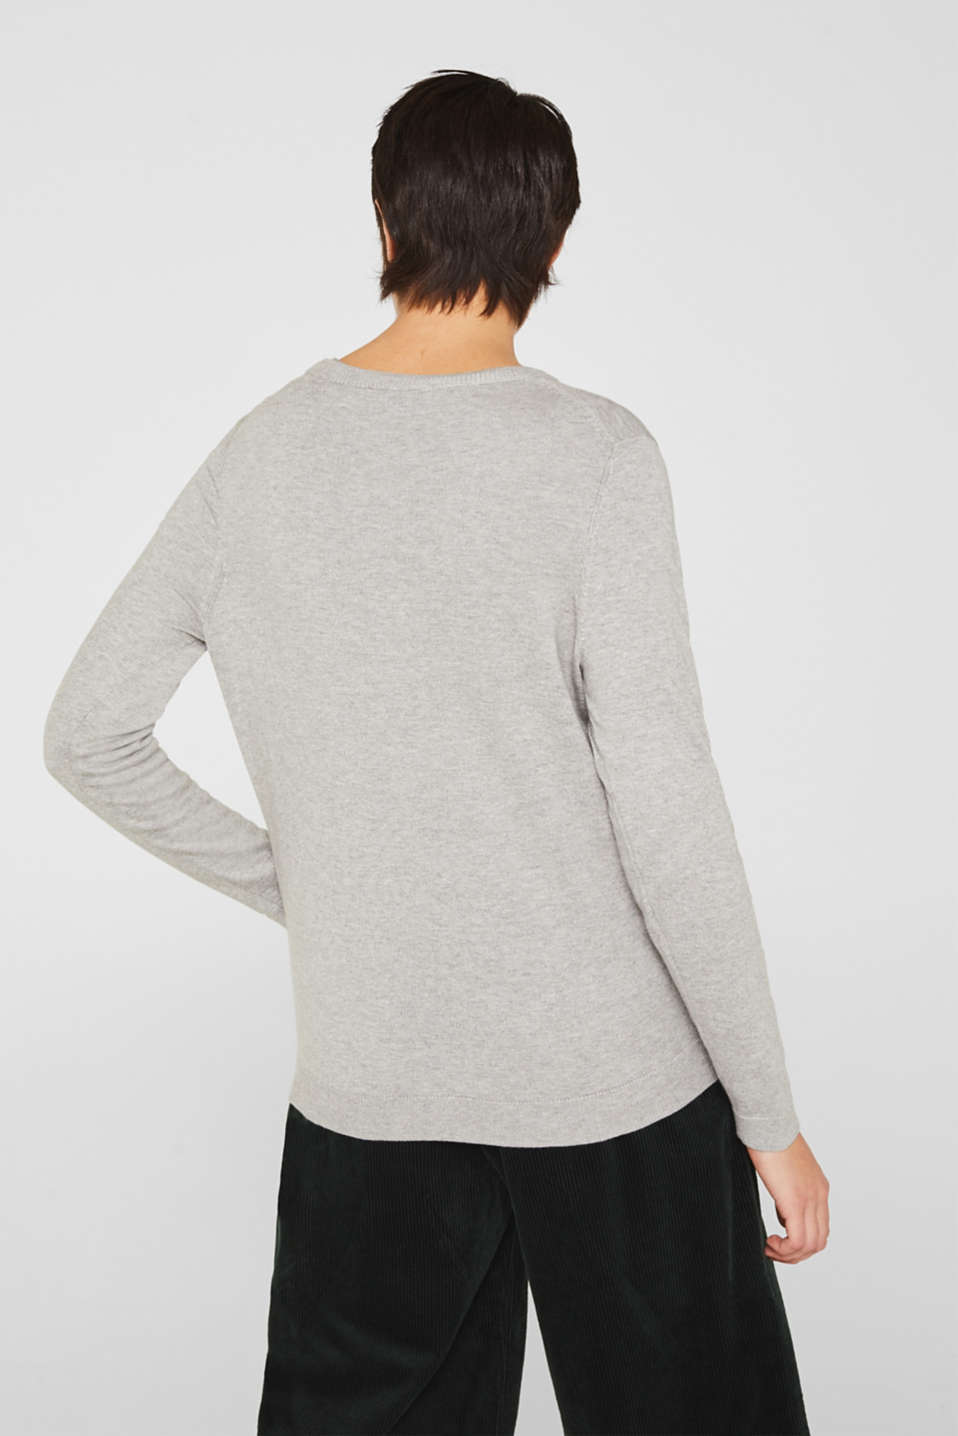 Fine-knit blended cotton cardigan, LIGHT GREY 5, detail image number 3